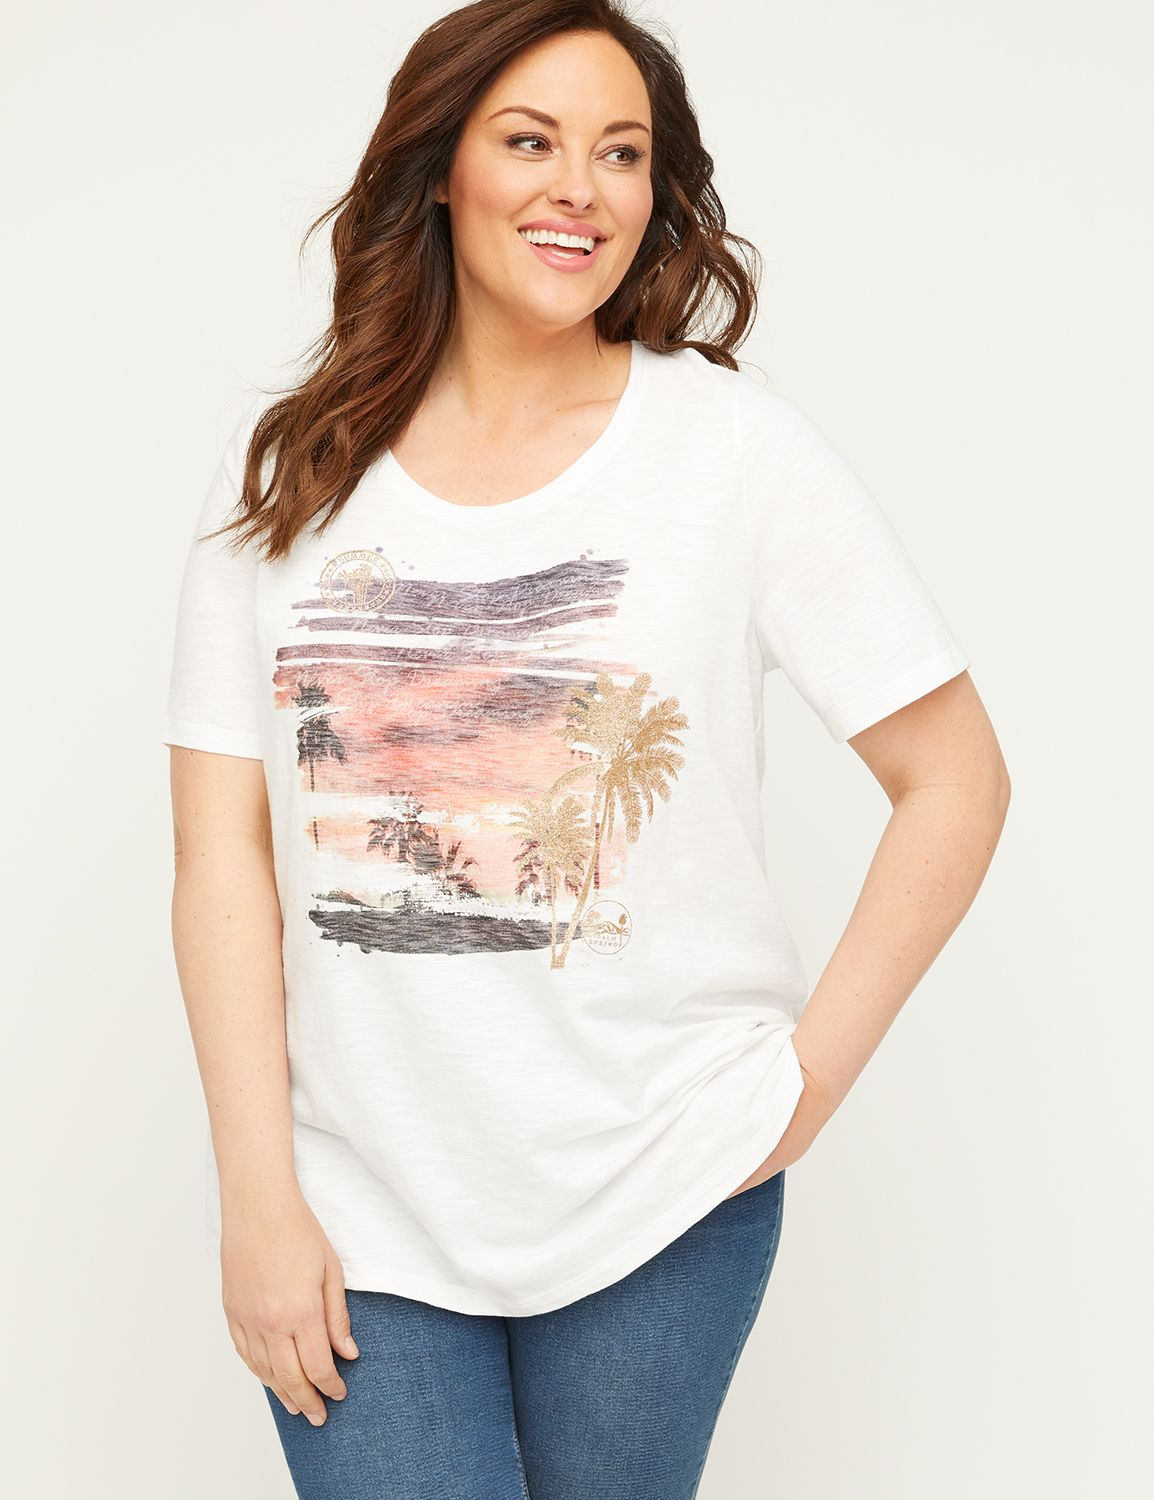 Beachfront Tee (400001484043 Knits) photo